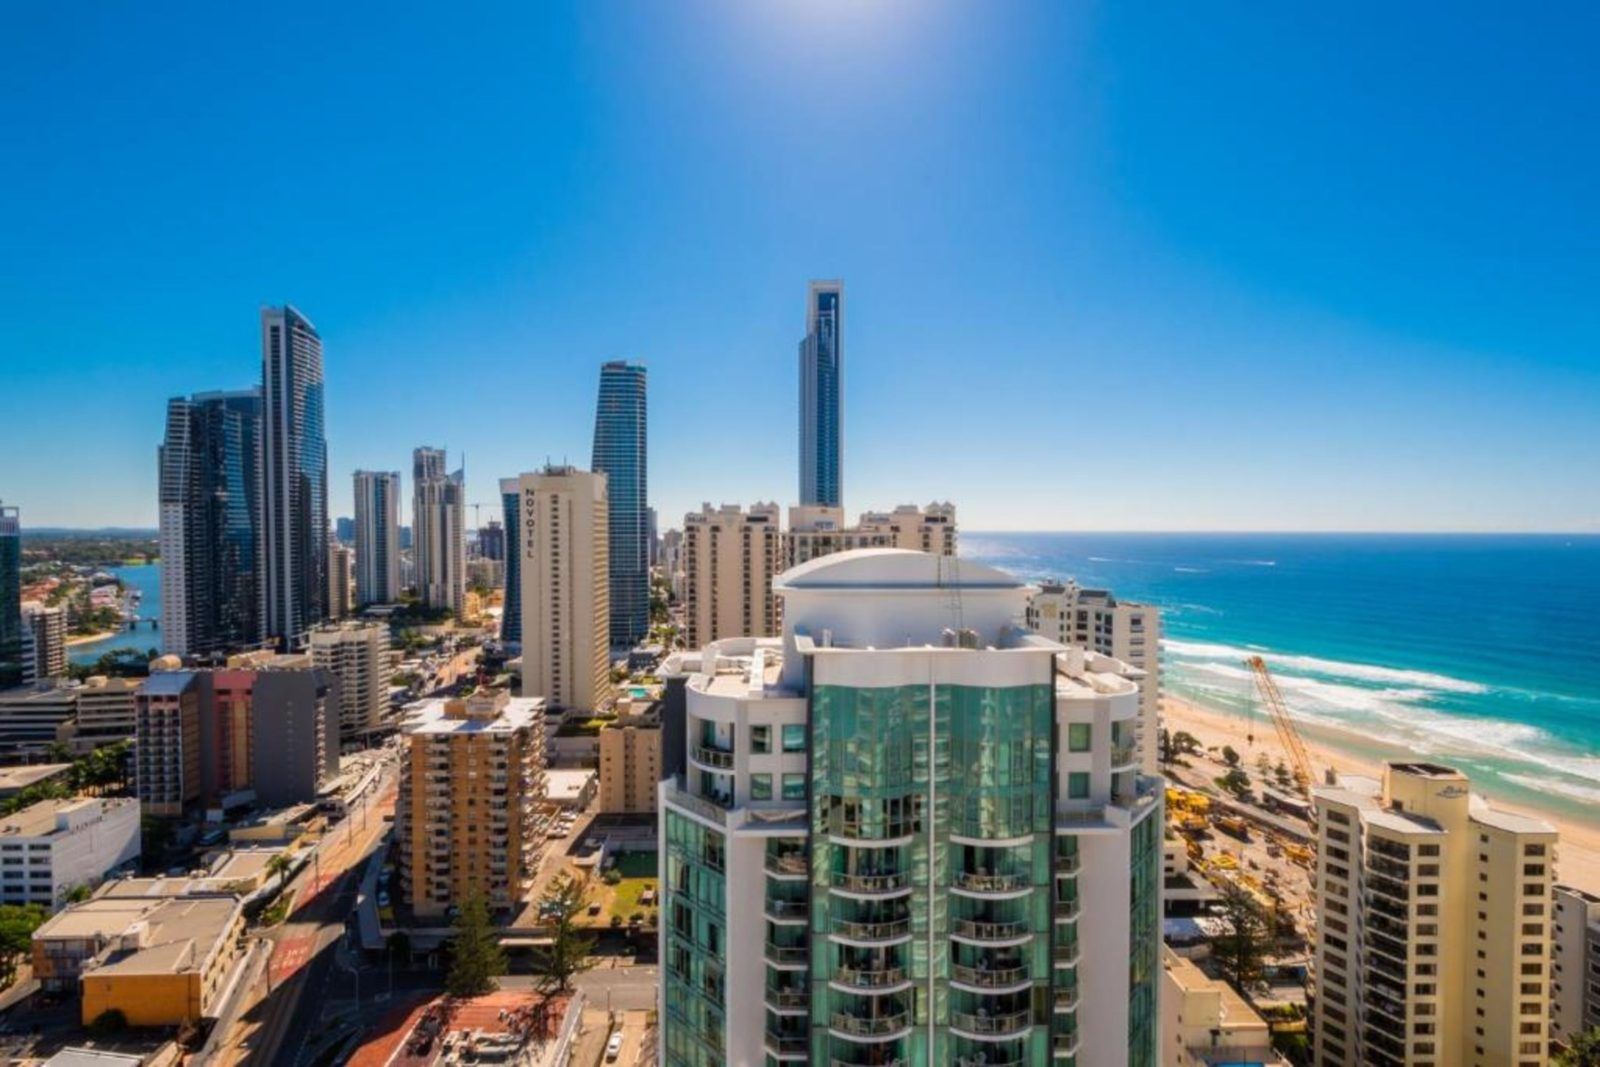 Aegean Apartments Surfers Paradise Queensland lets go on A Gold Coast Holiday